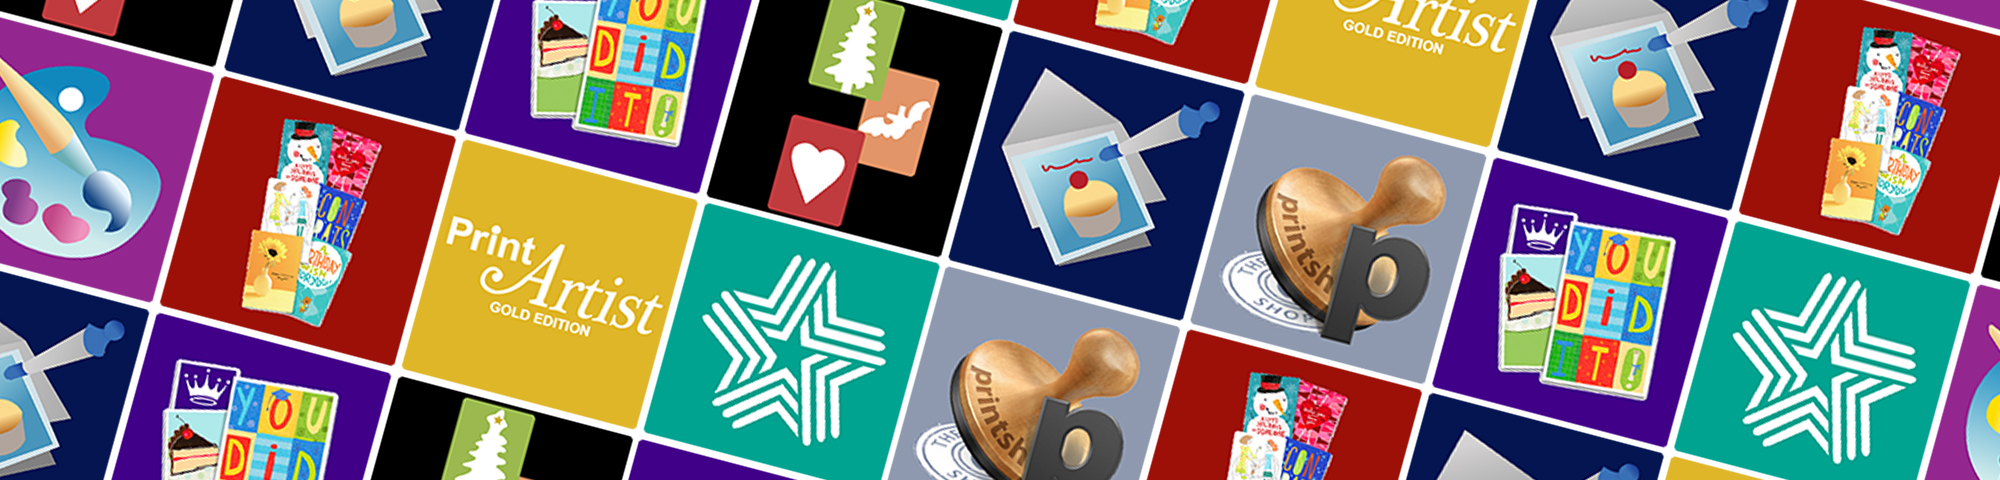 Best Greeting Card Software: Programs for Making Cards | Top Ten ...